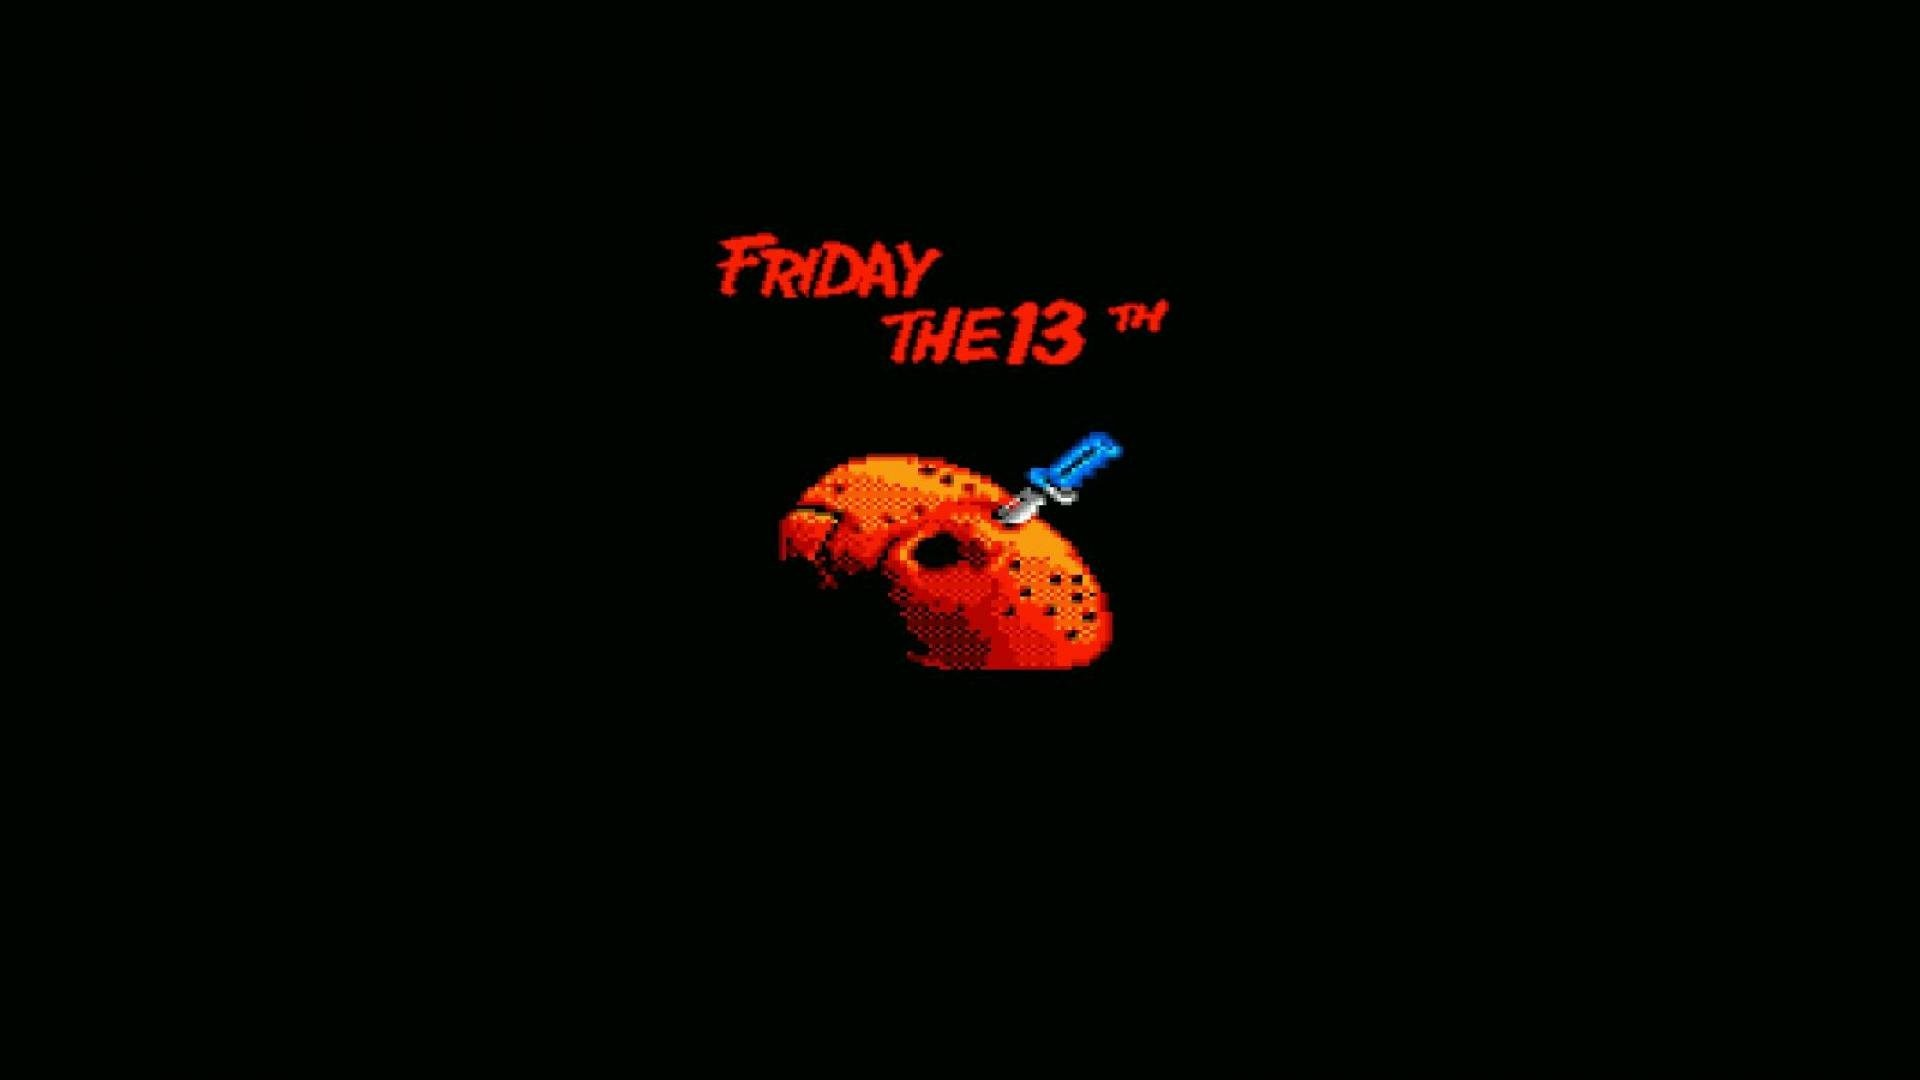 Res: 1920x1080, friday the 13th facebook cover